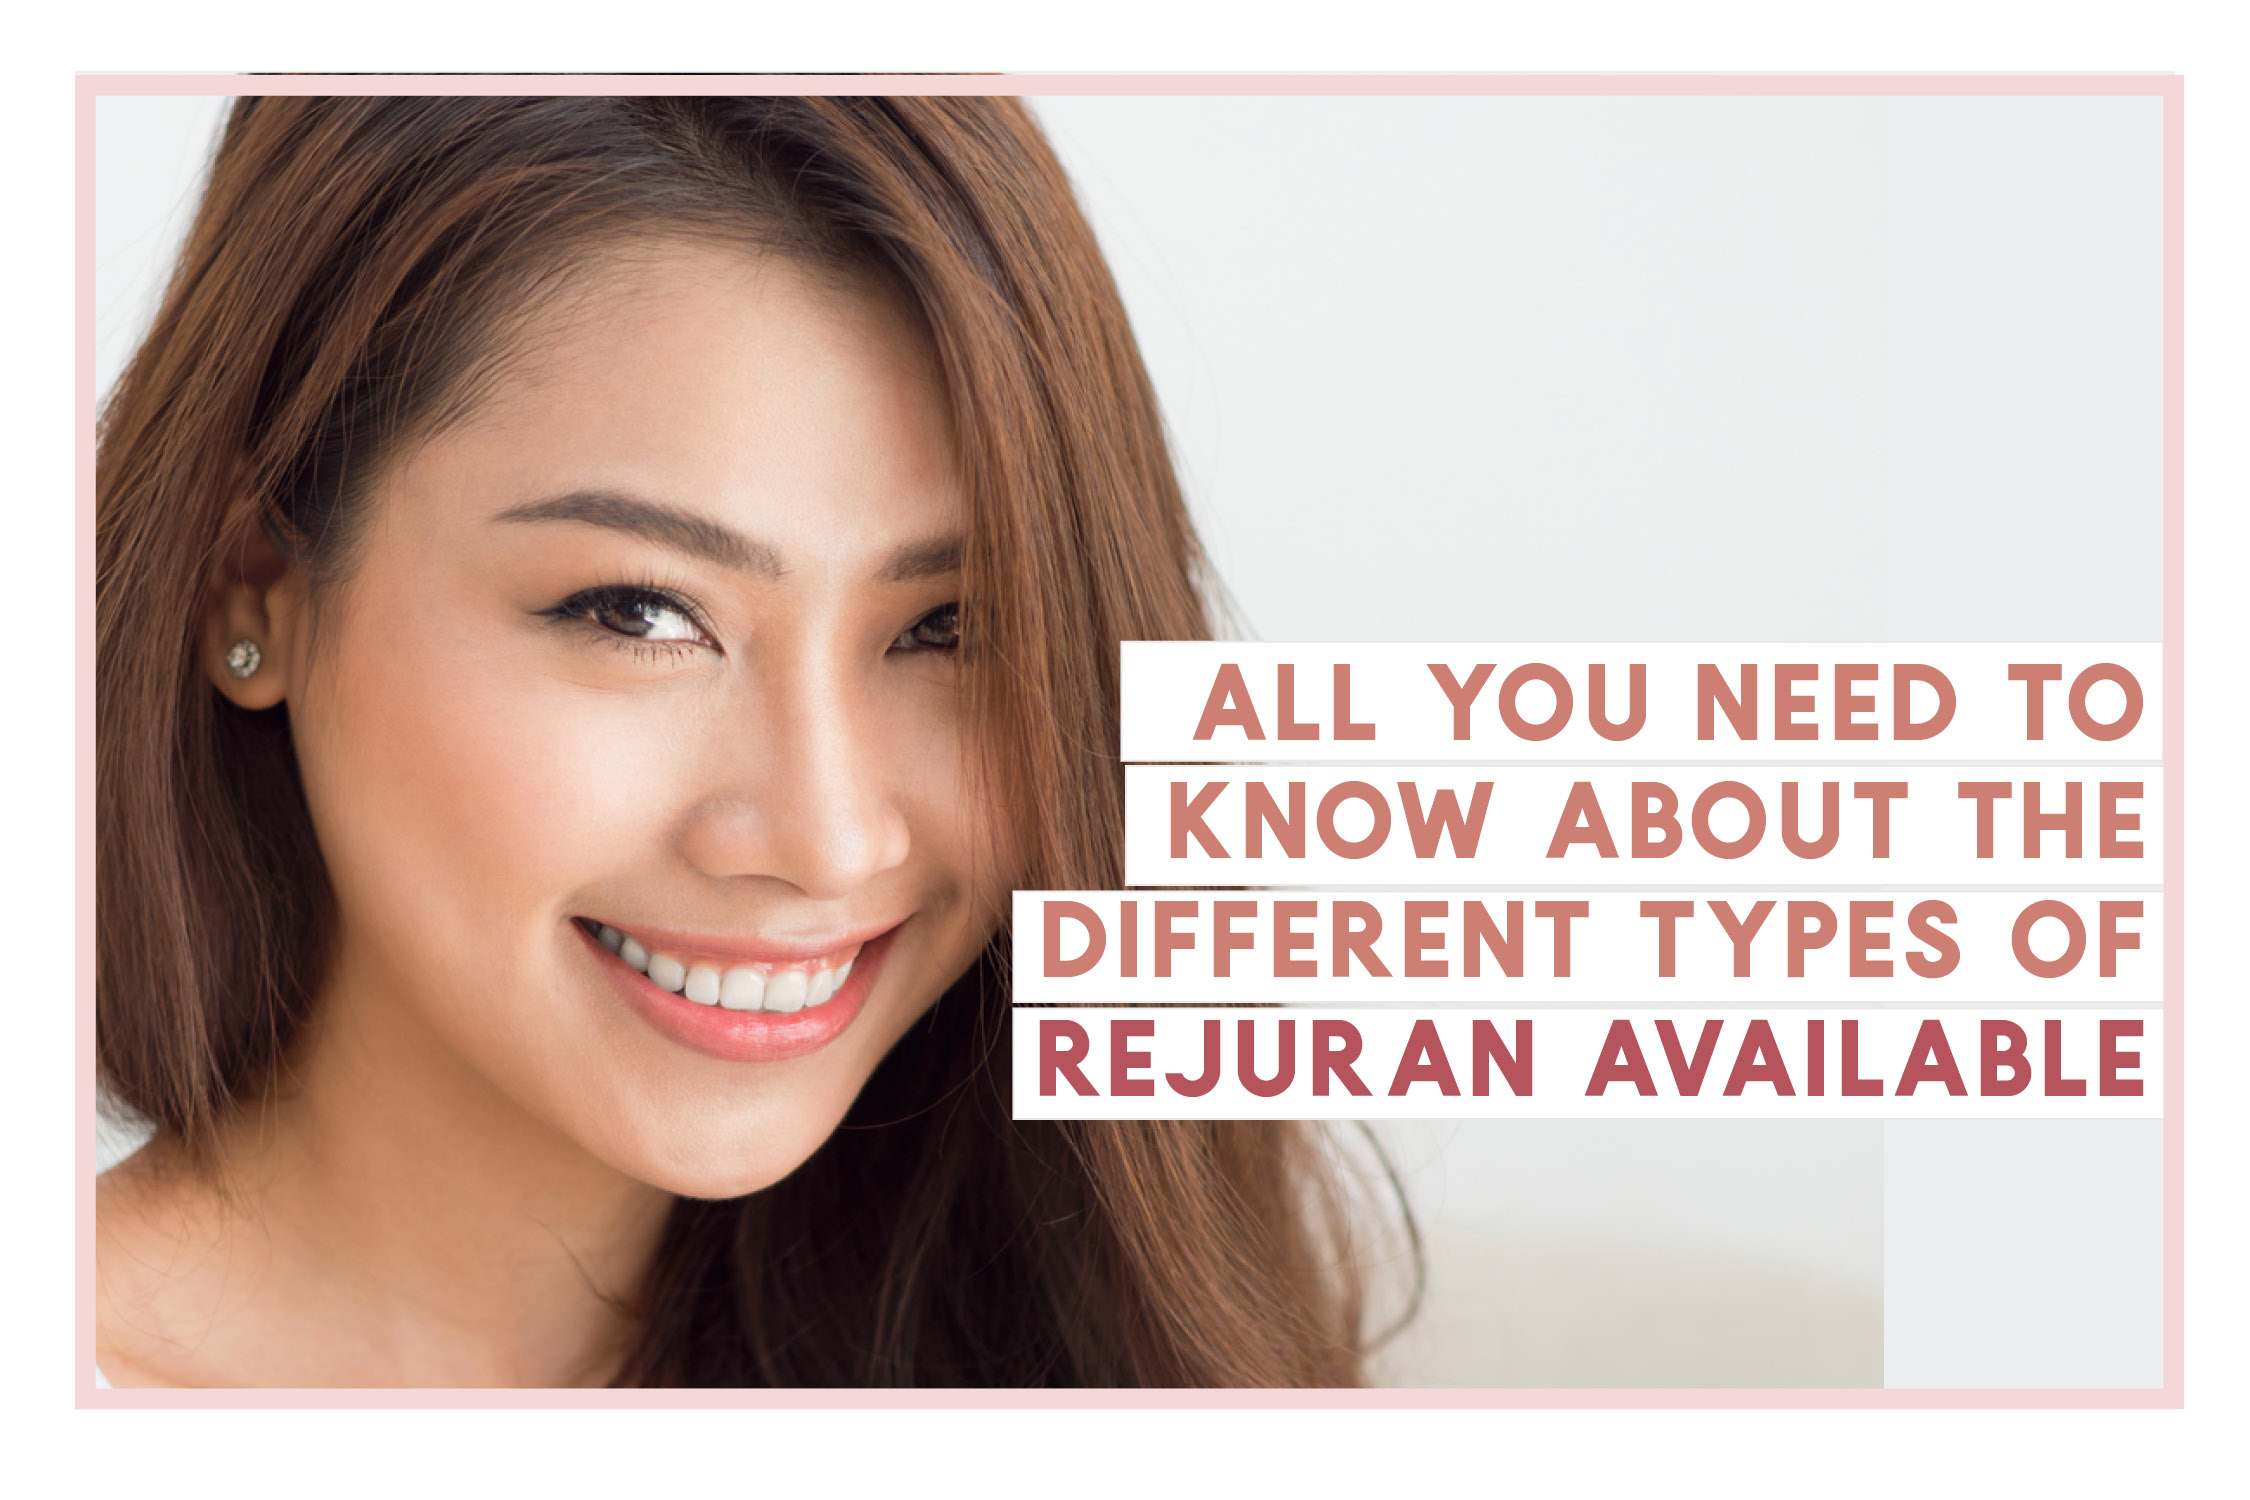 All you need to know about the different types of Rejuran available